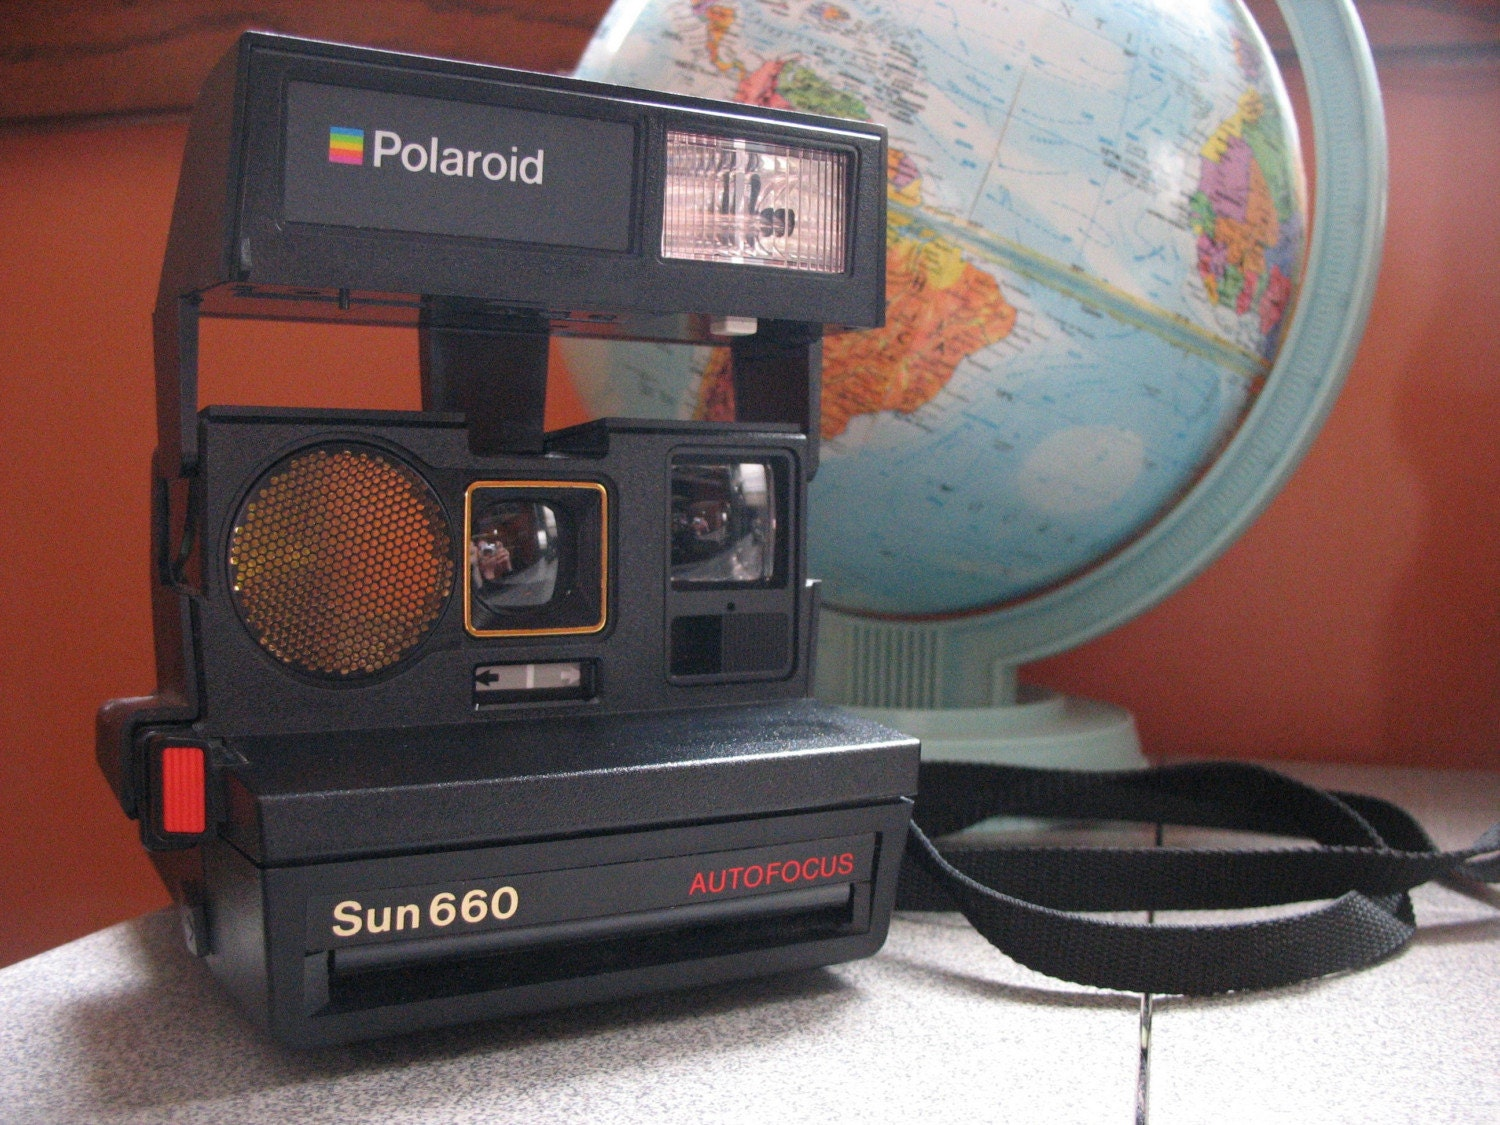 1980 39 s polaroid sun 660 autofocus land camera. Black Bedroom Furniture Sets. Home Design Ideas